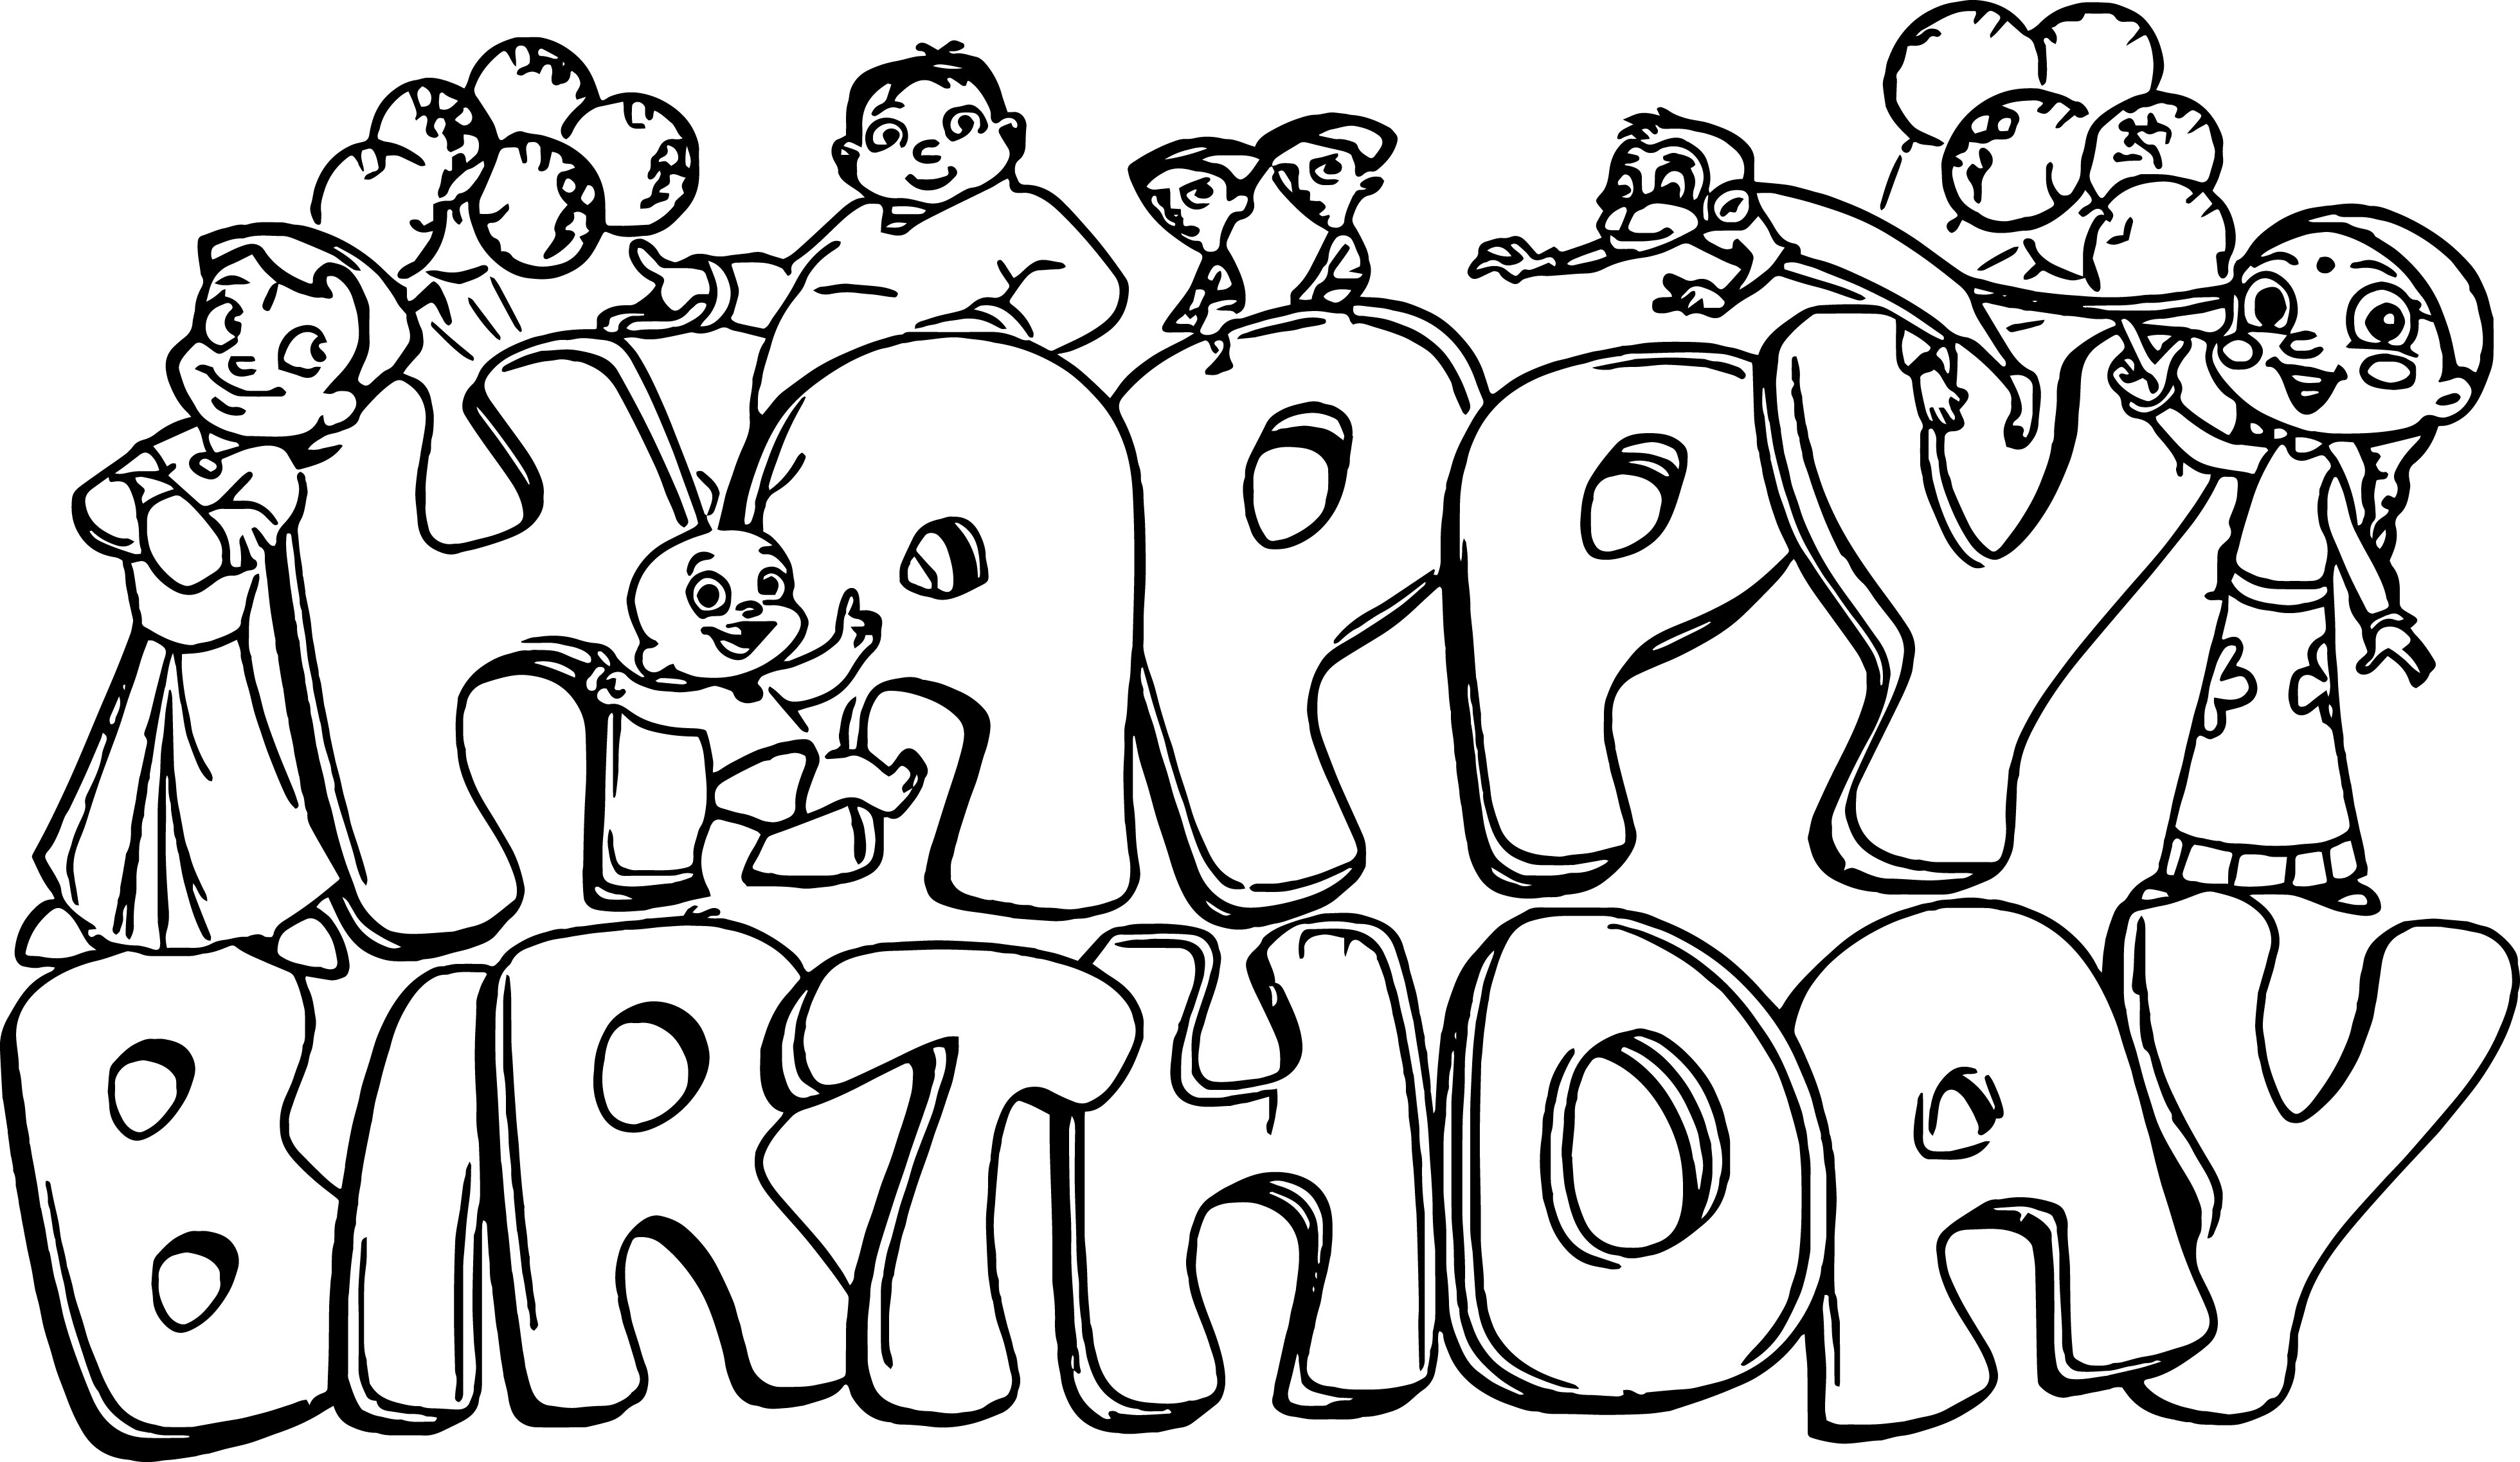 Happy Birthday Coloring Pages | Free download best Happy Birthday ...